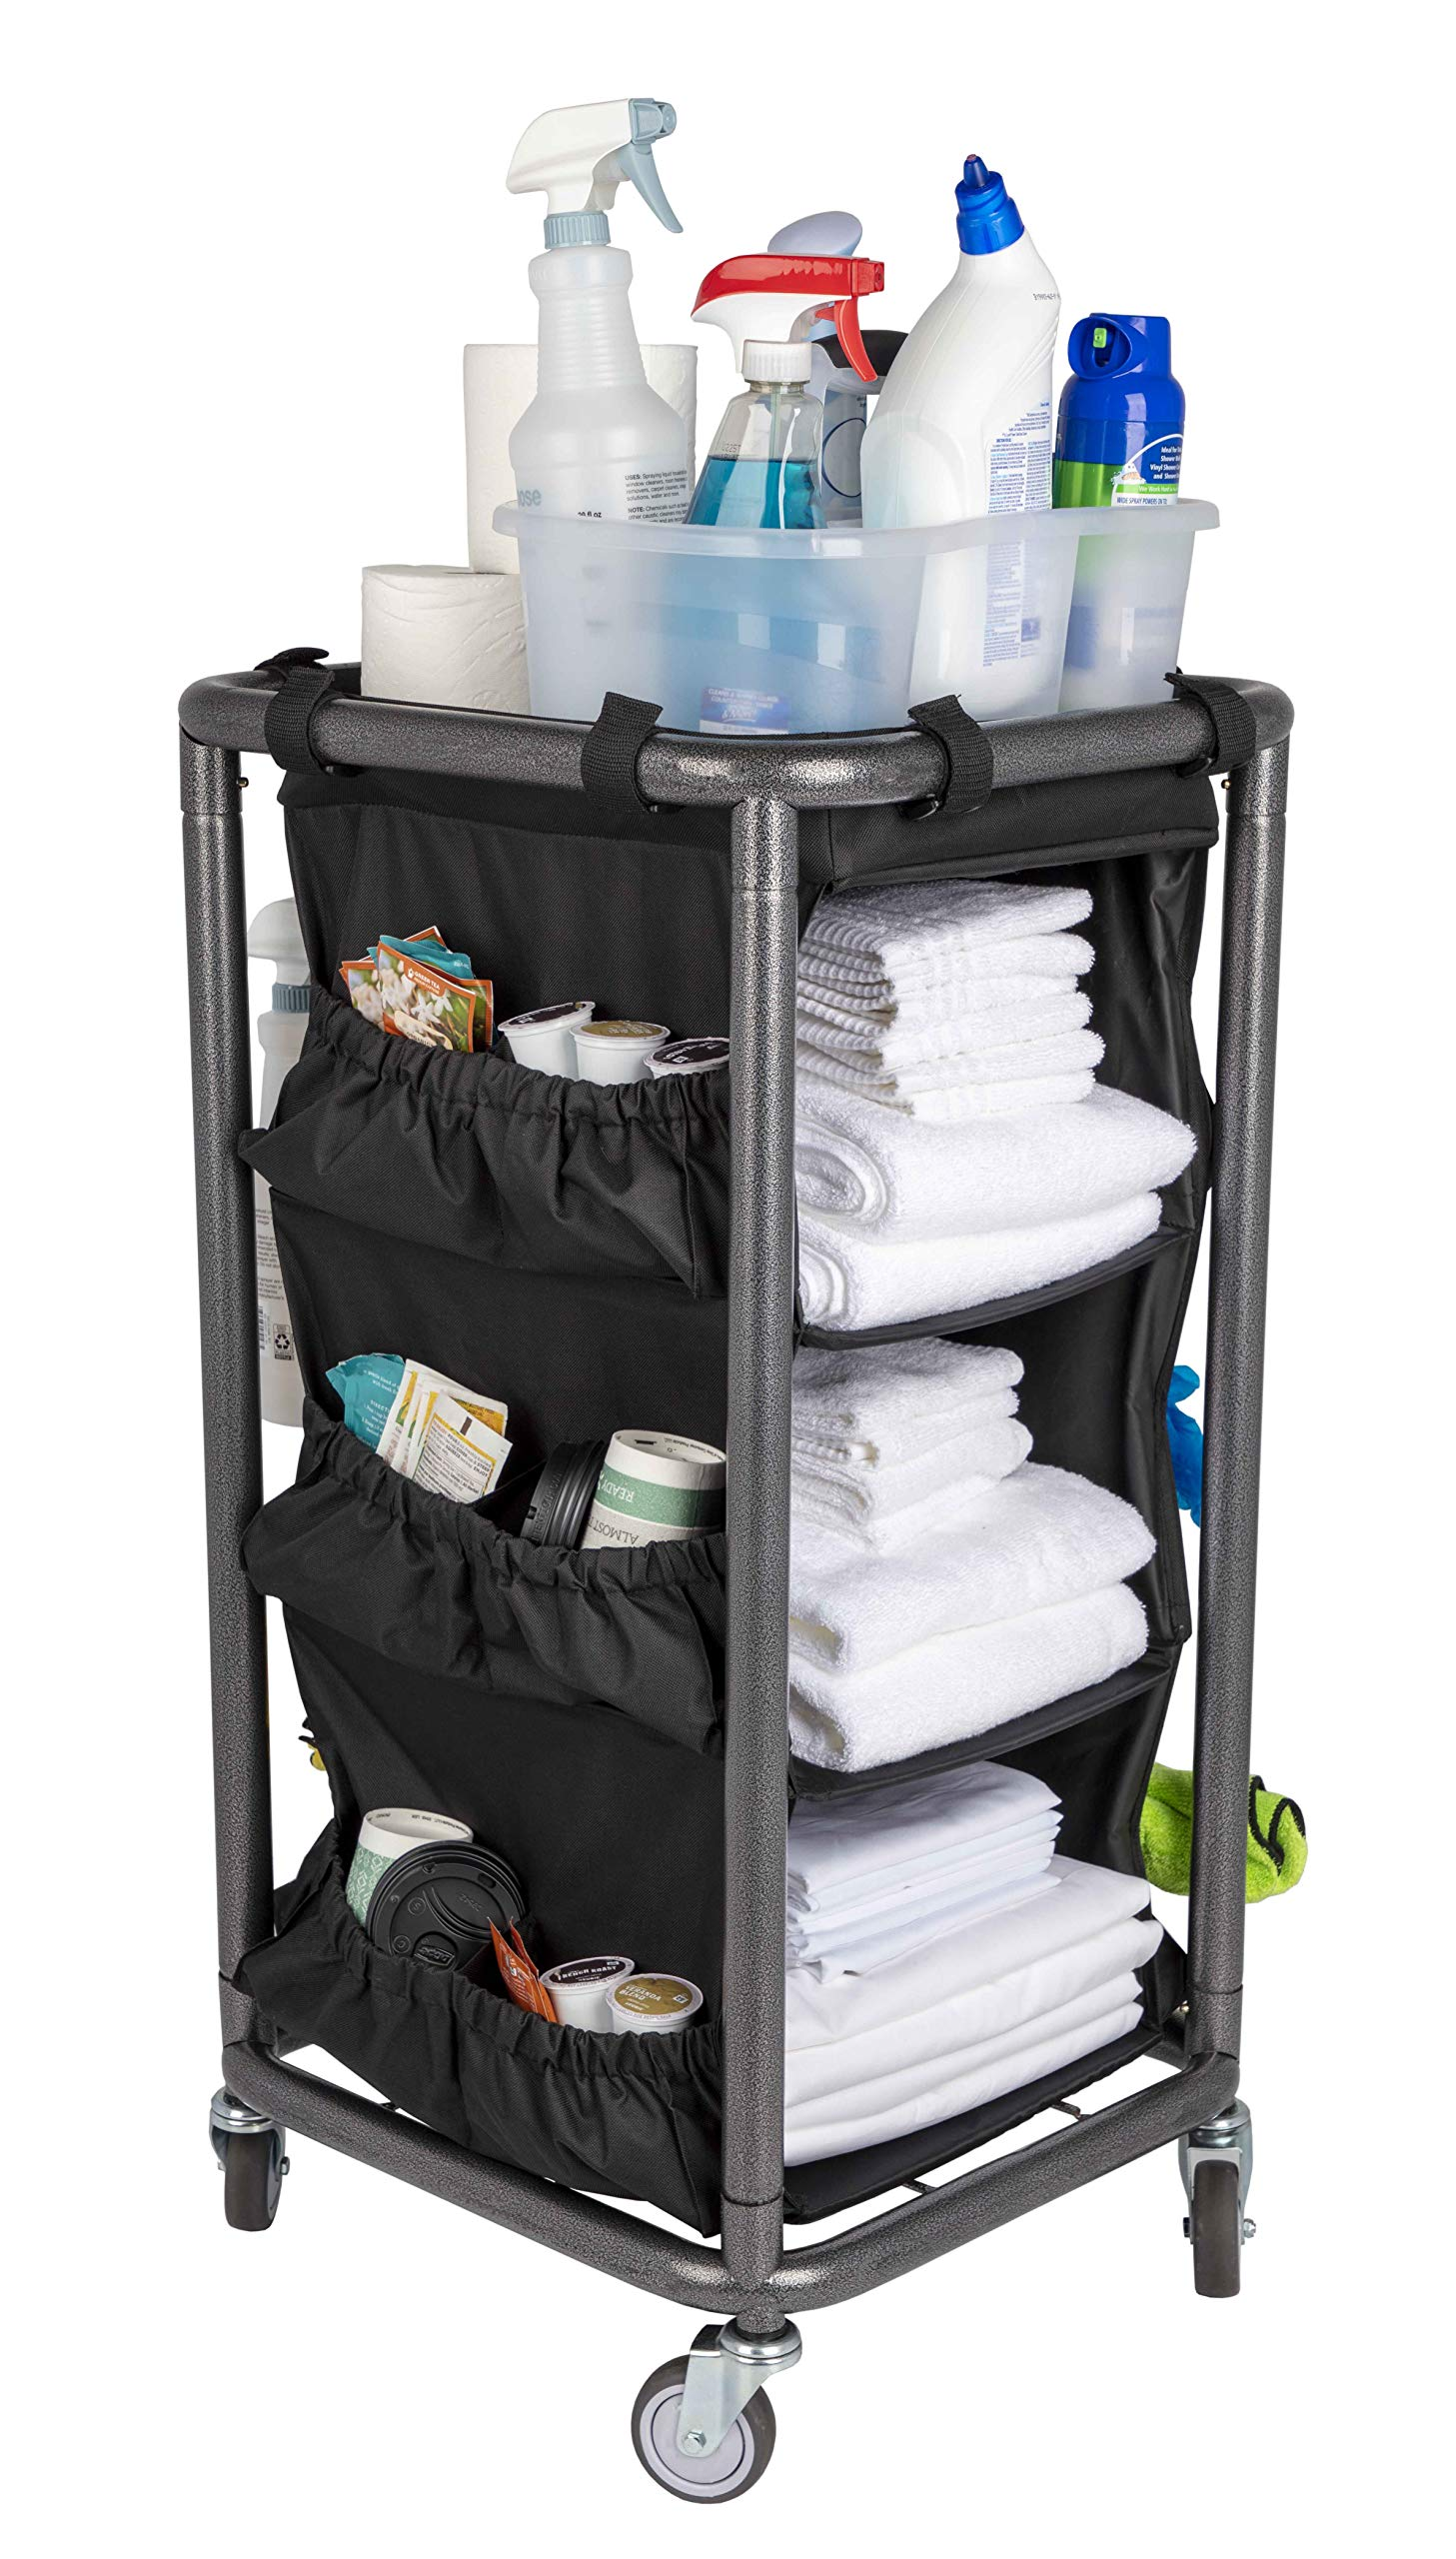 Housekeeping and Janitorial Cart with Rolling Wheels, Black Bag, Compact Steel Frame, Hammertone Finish